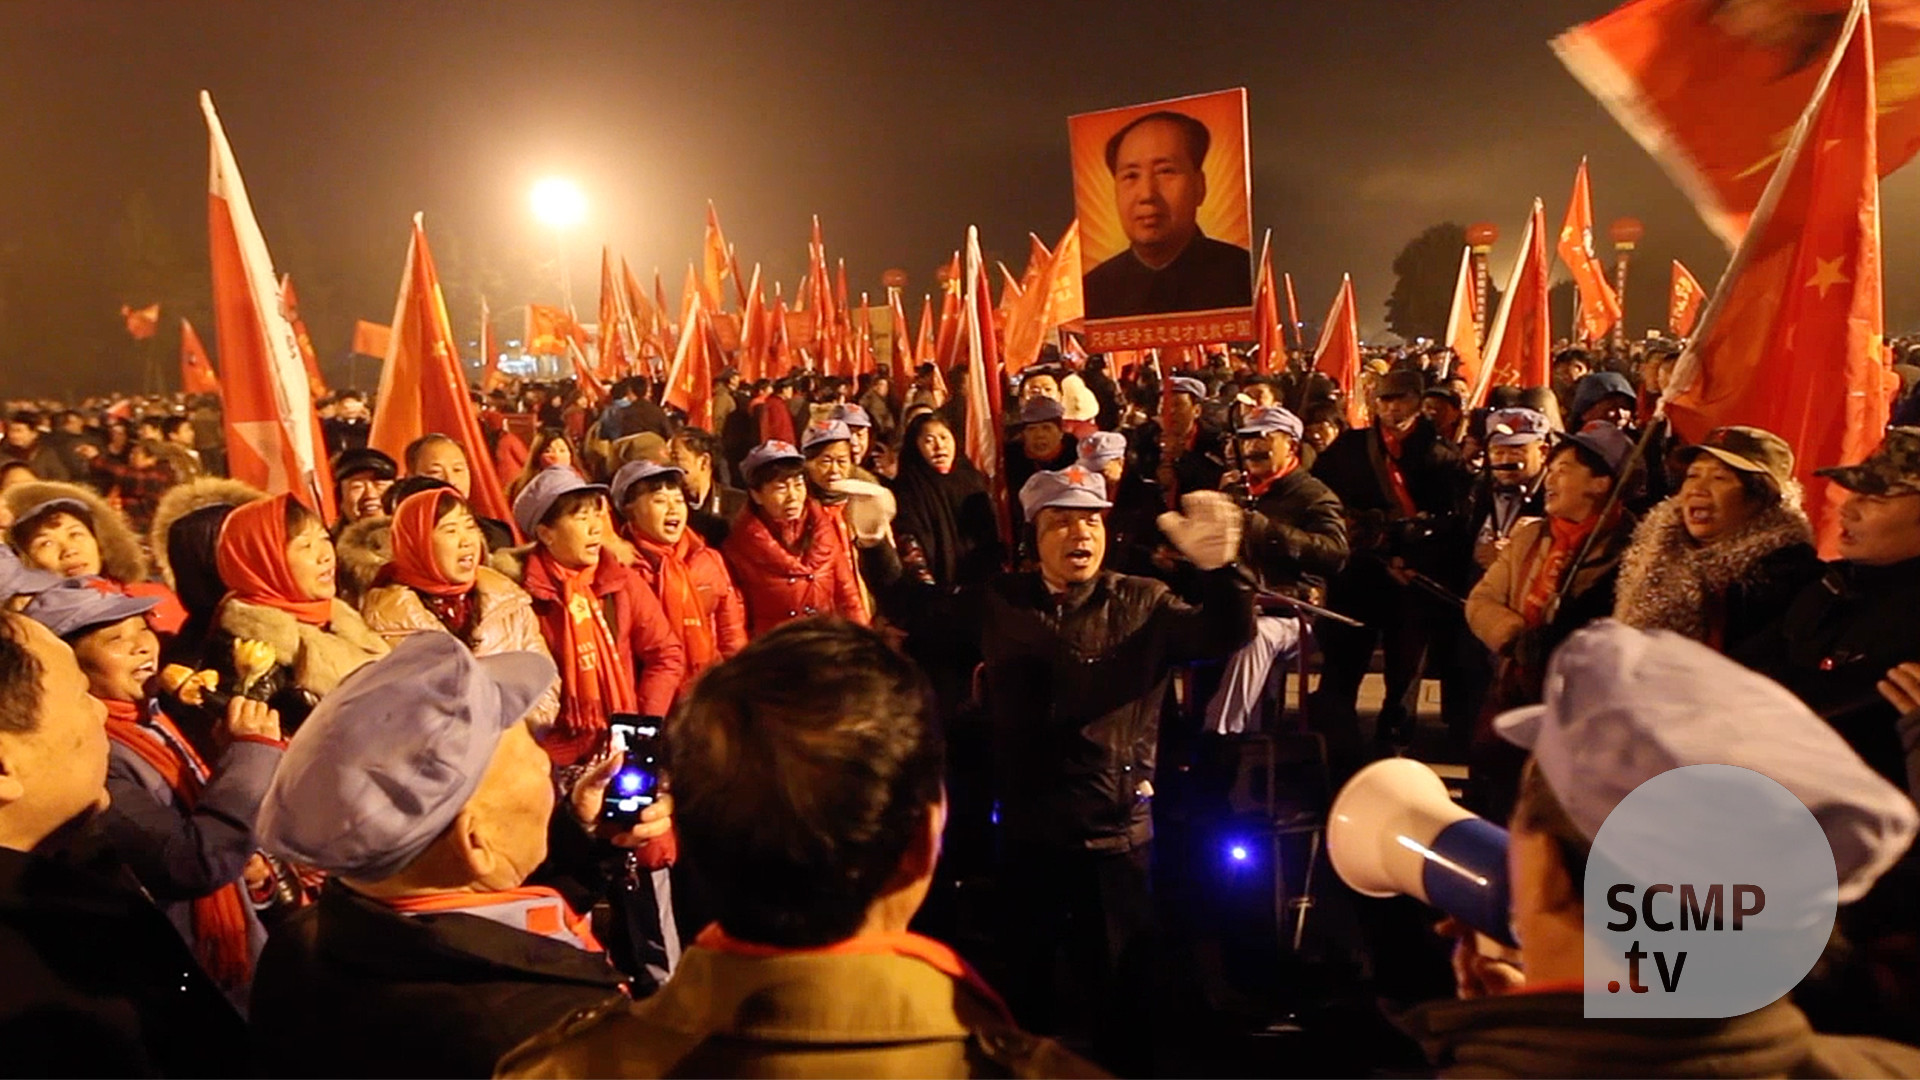 Res: 1920x1080, Tens of thousands of Chinese celebrate the life of Mao Zedong on his  birthday | South China Morning Post